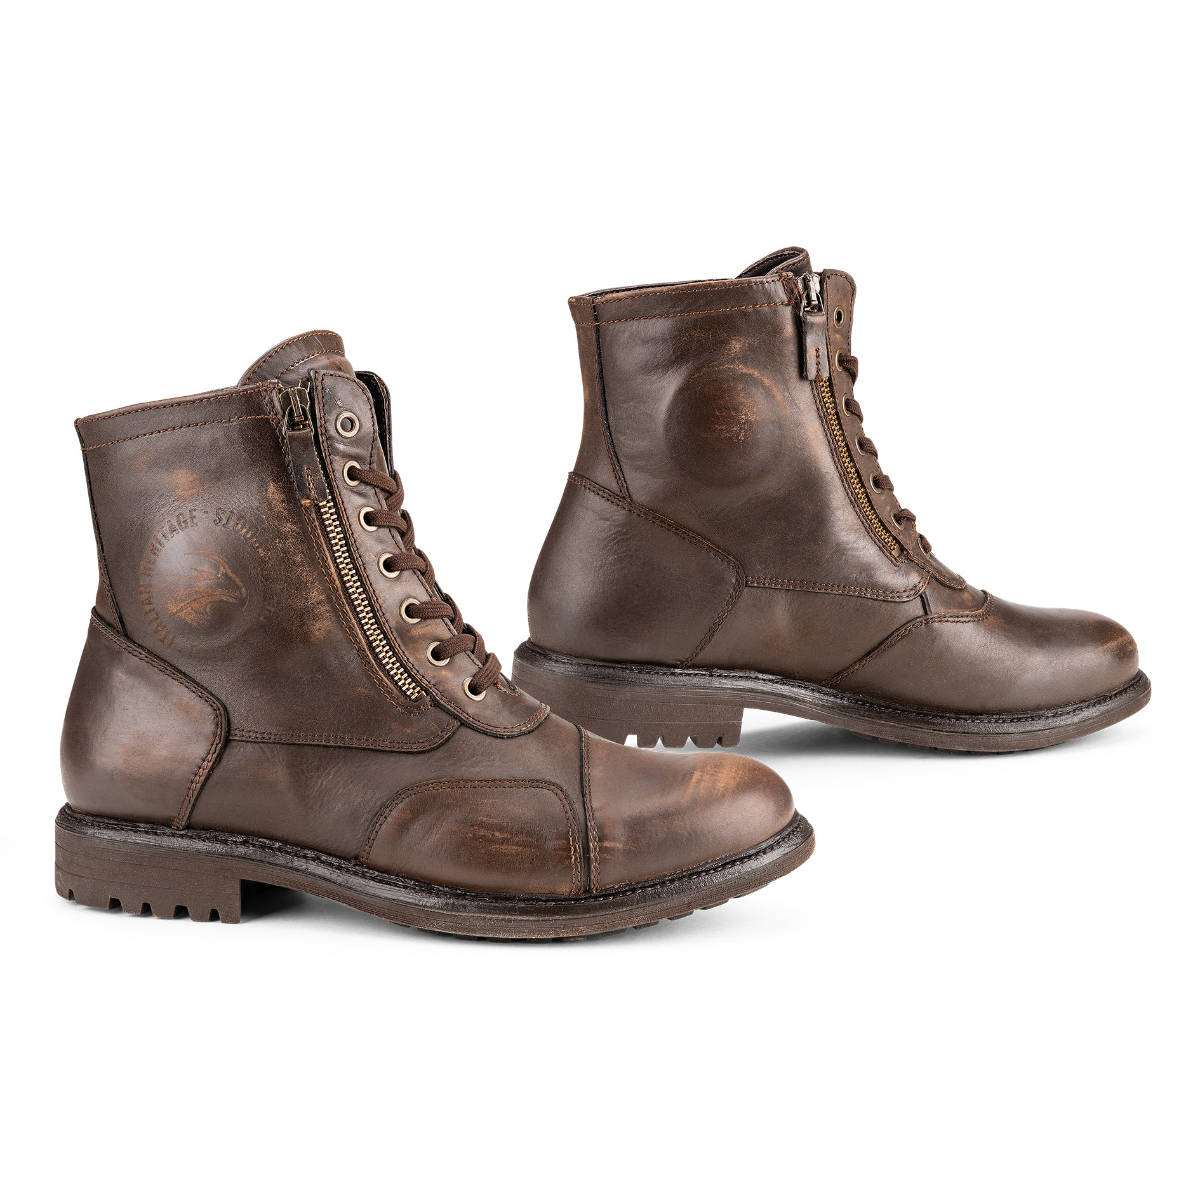 AVIATOR Vintage Riding Boots